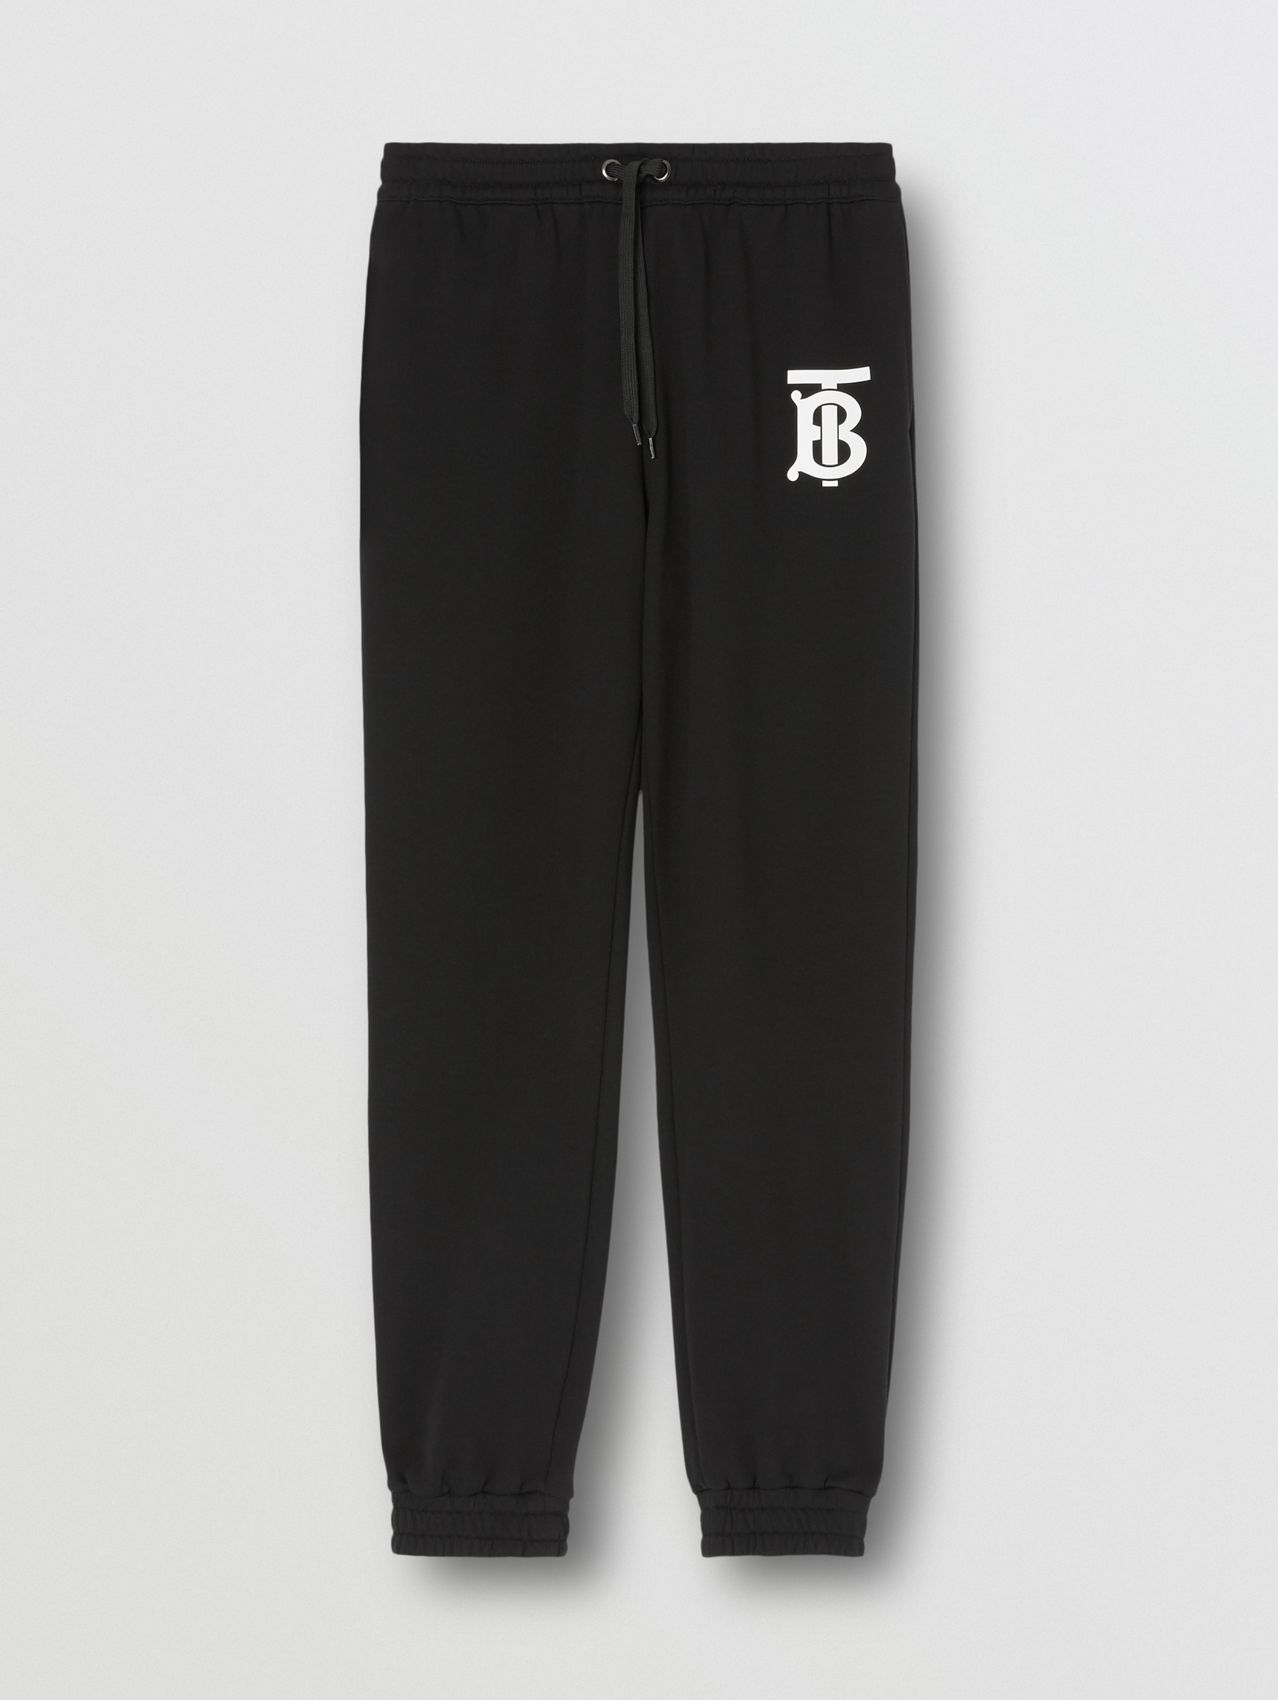 Monogram Motif Cotton Jogging Pants in Black